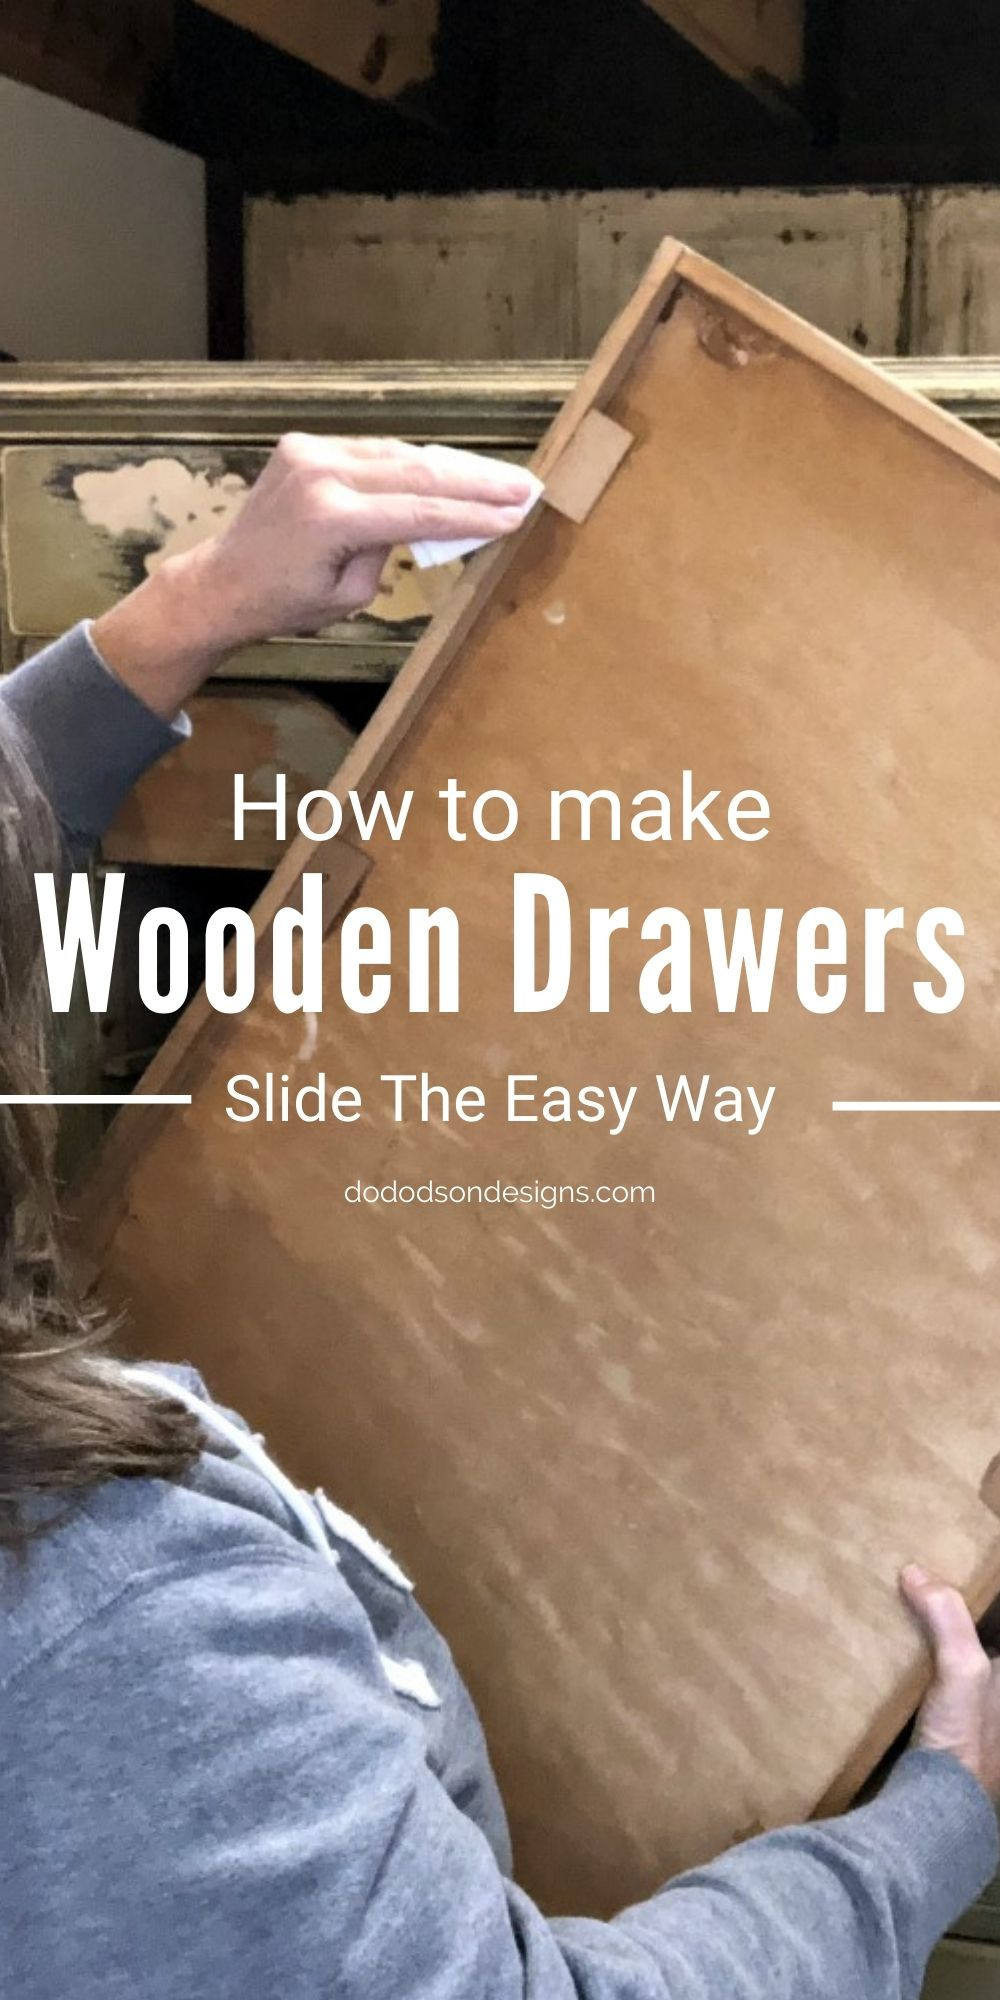 How To Make Wooden Drawers Slide The Easy Way